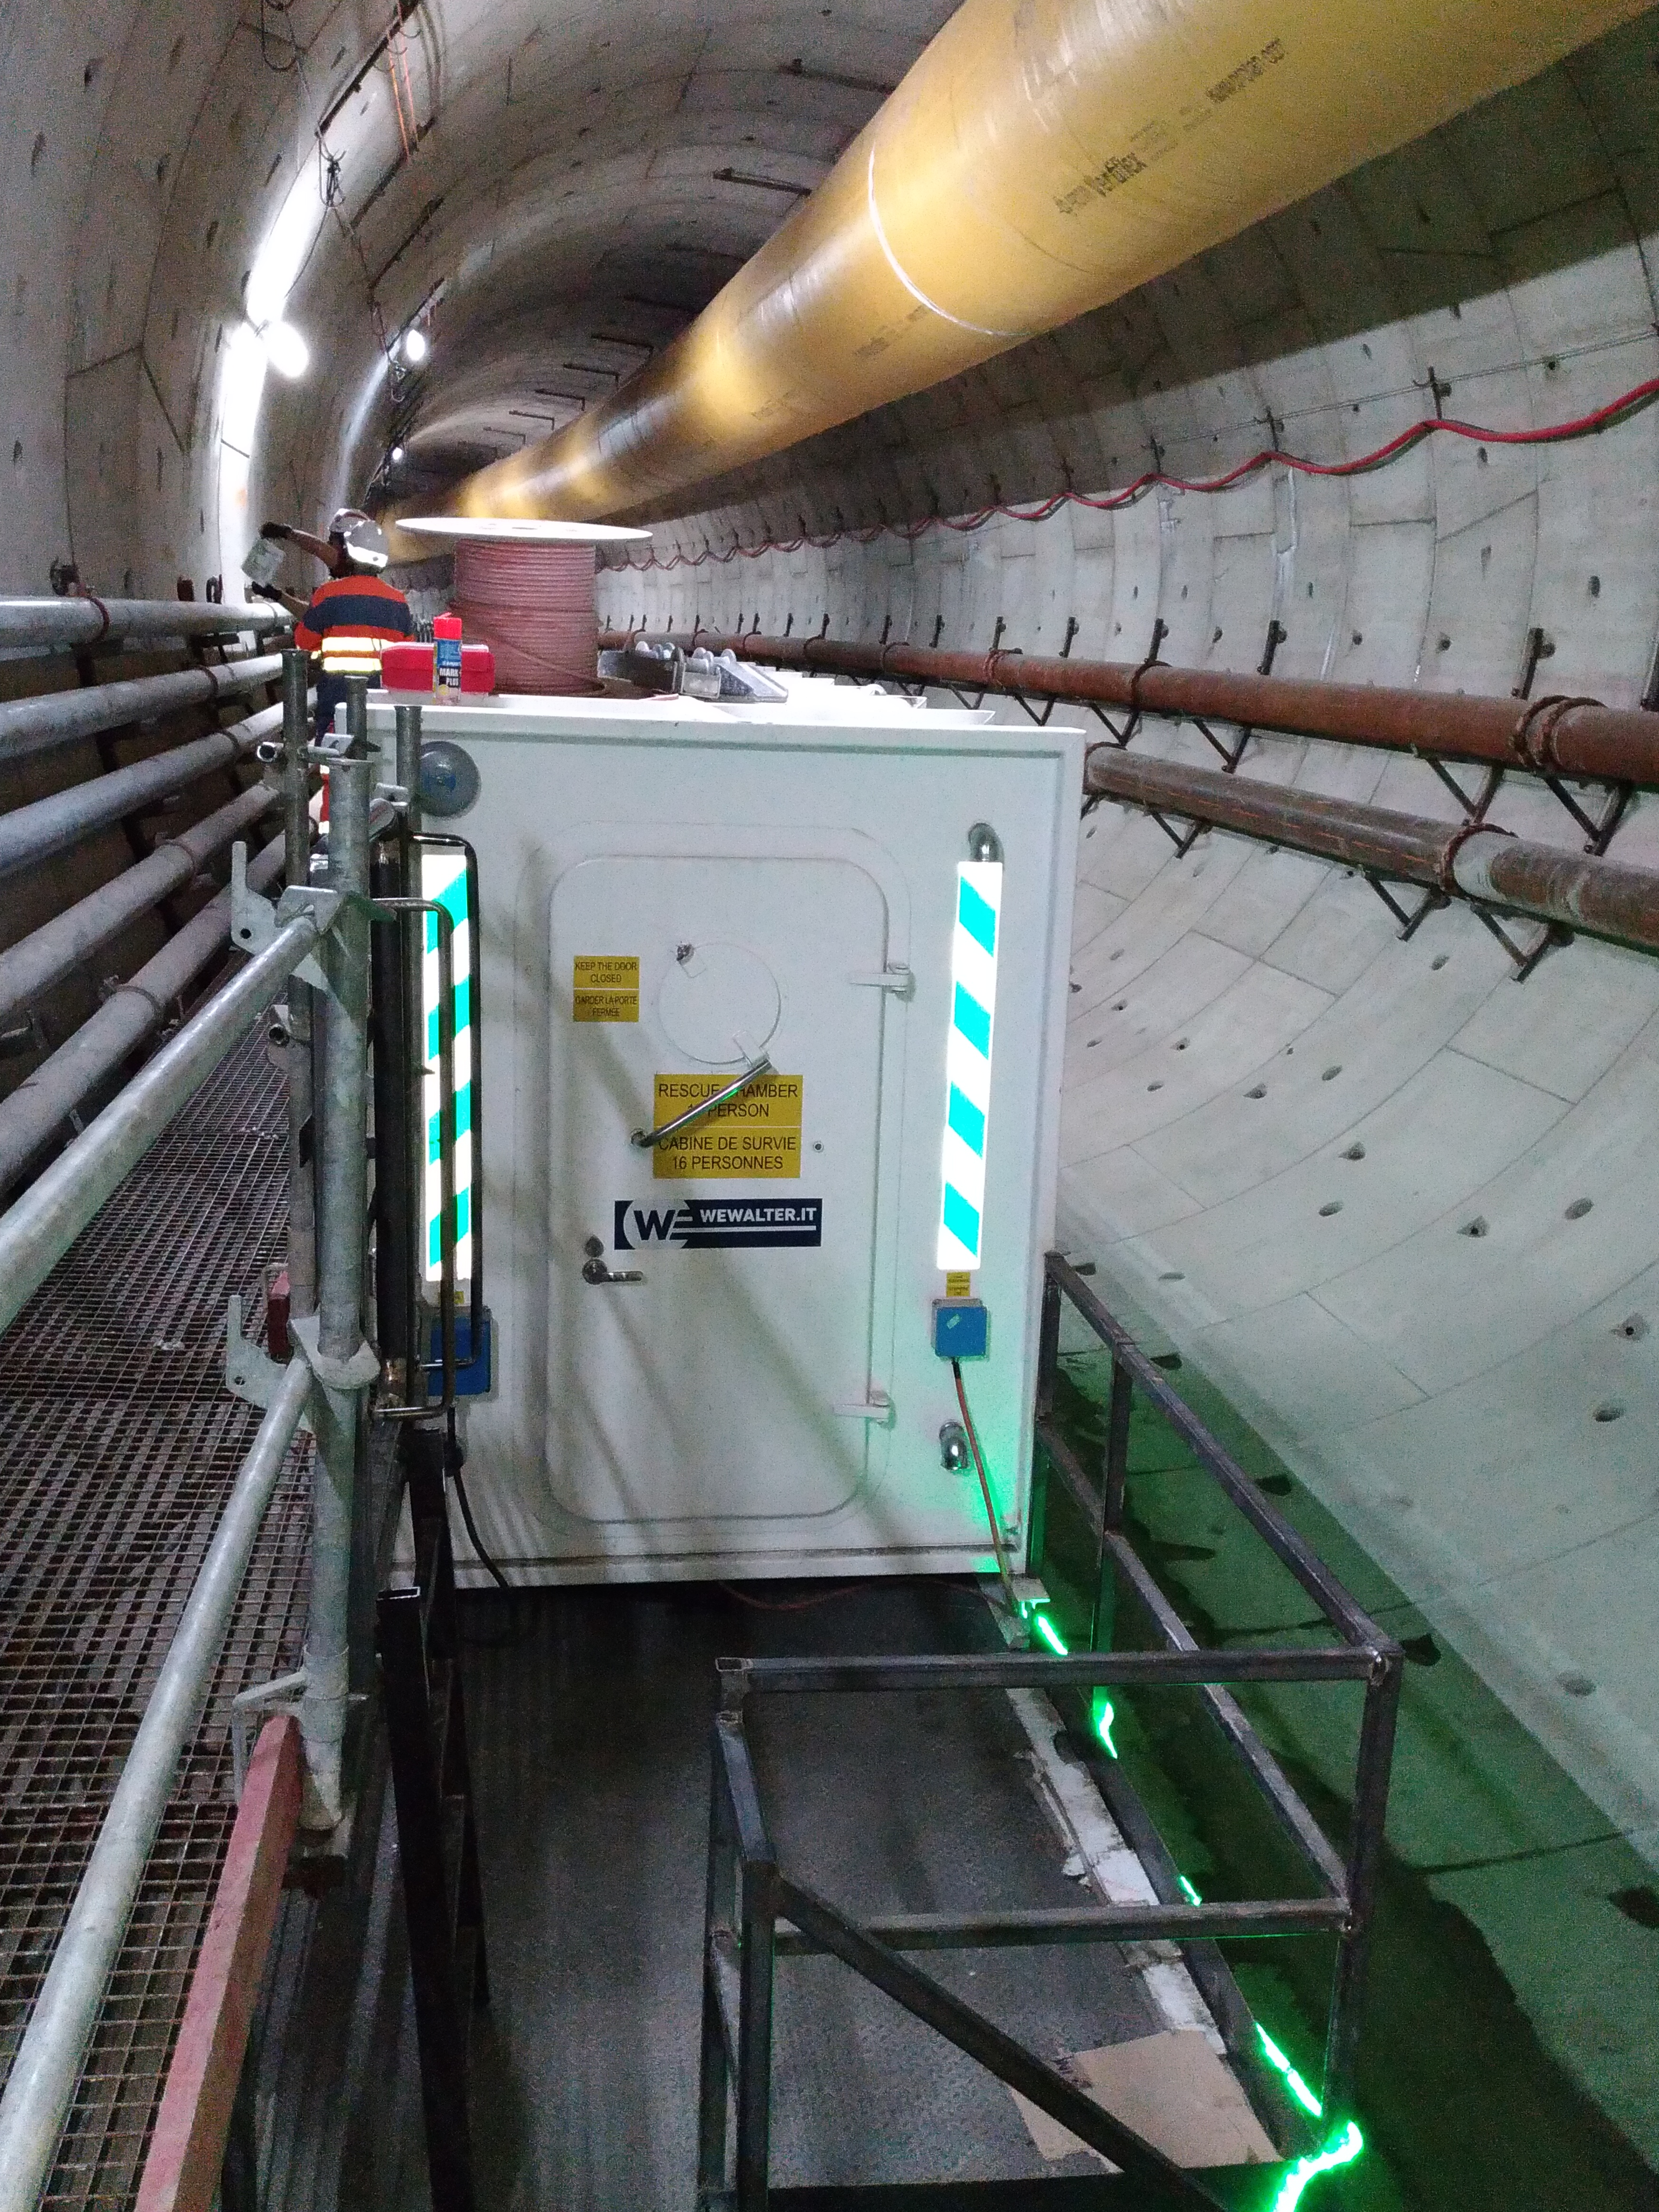 Rfeuge Chamber for tram tunnel line in France, Nice